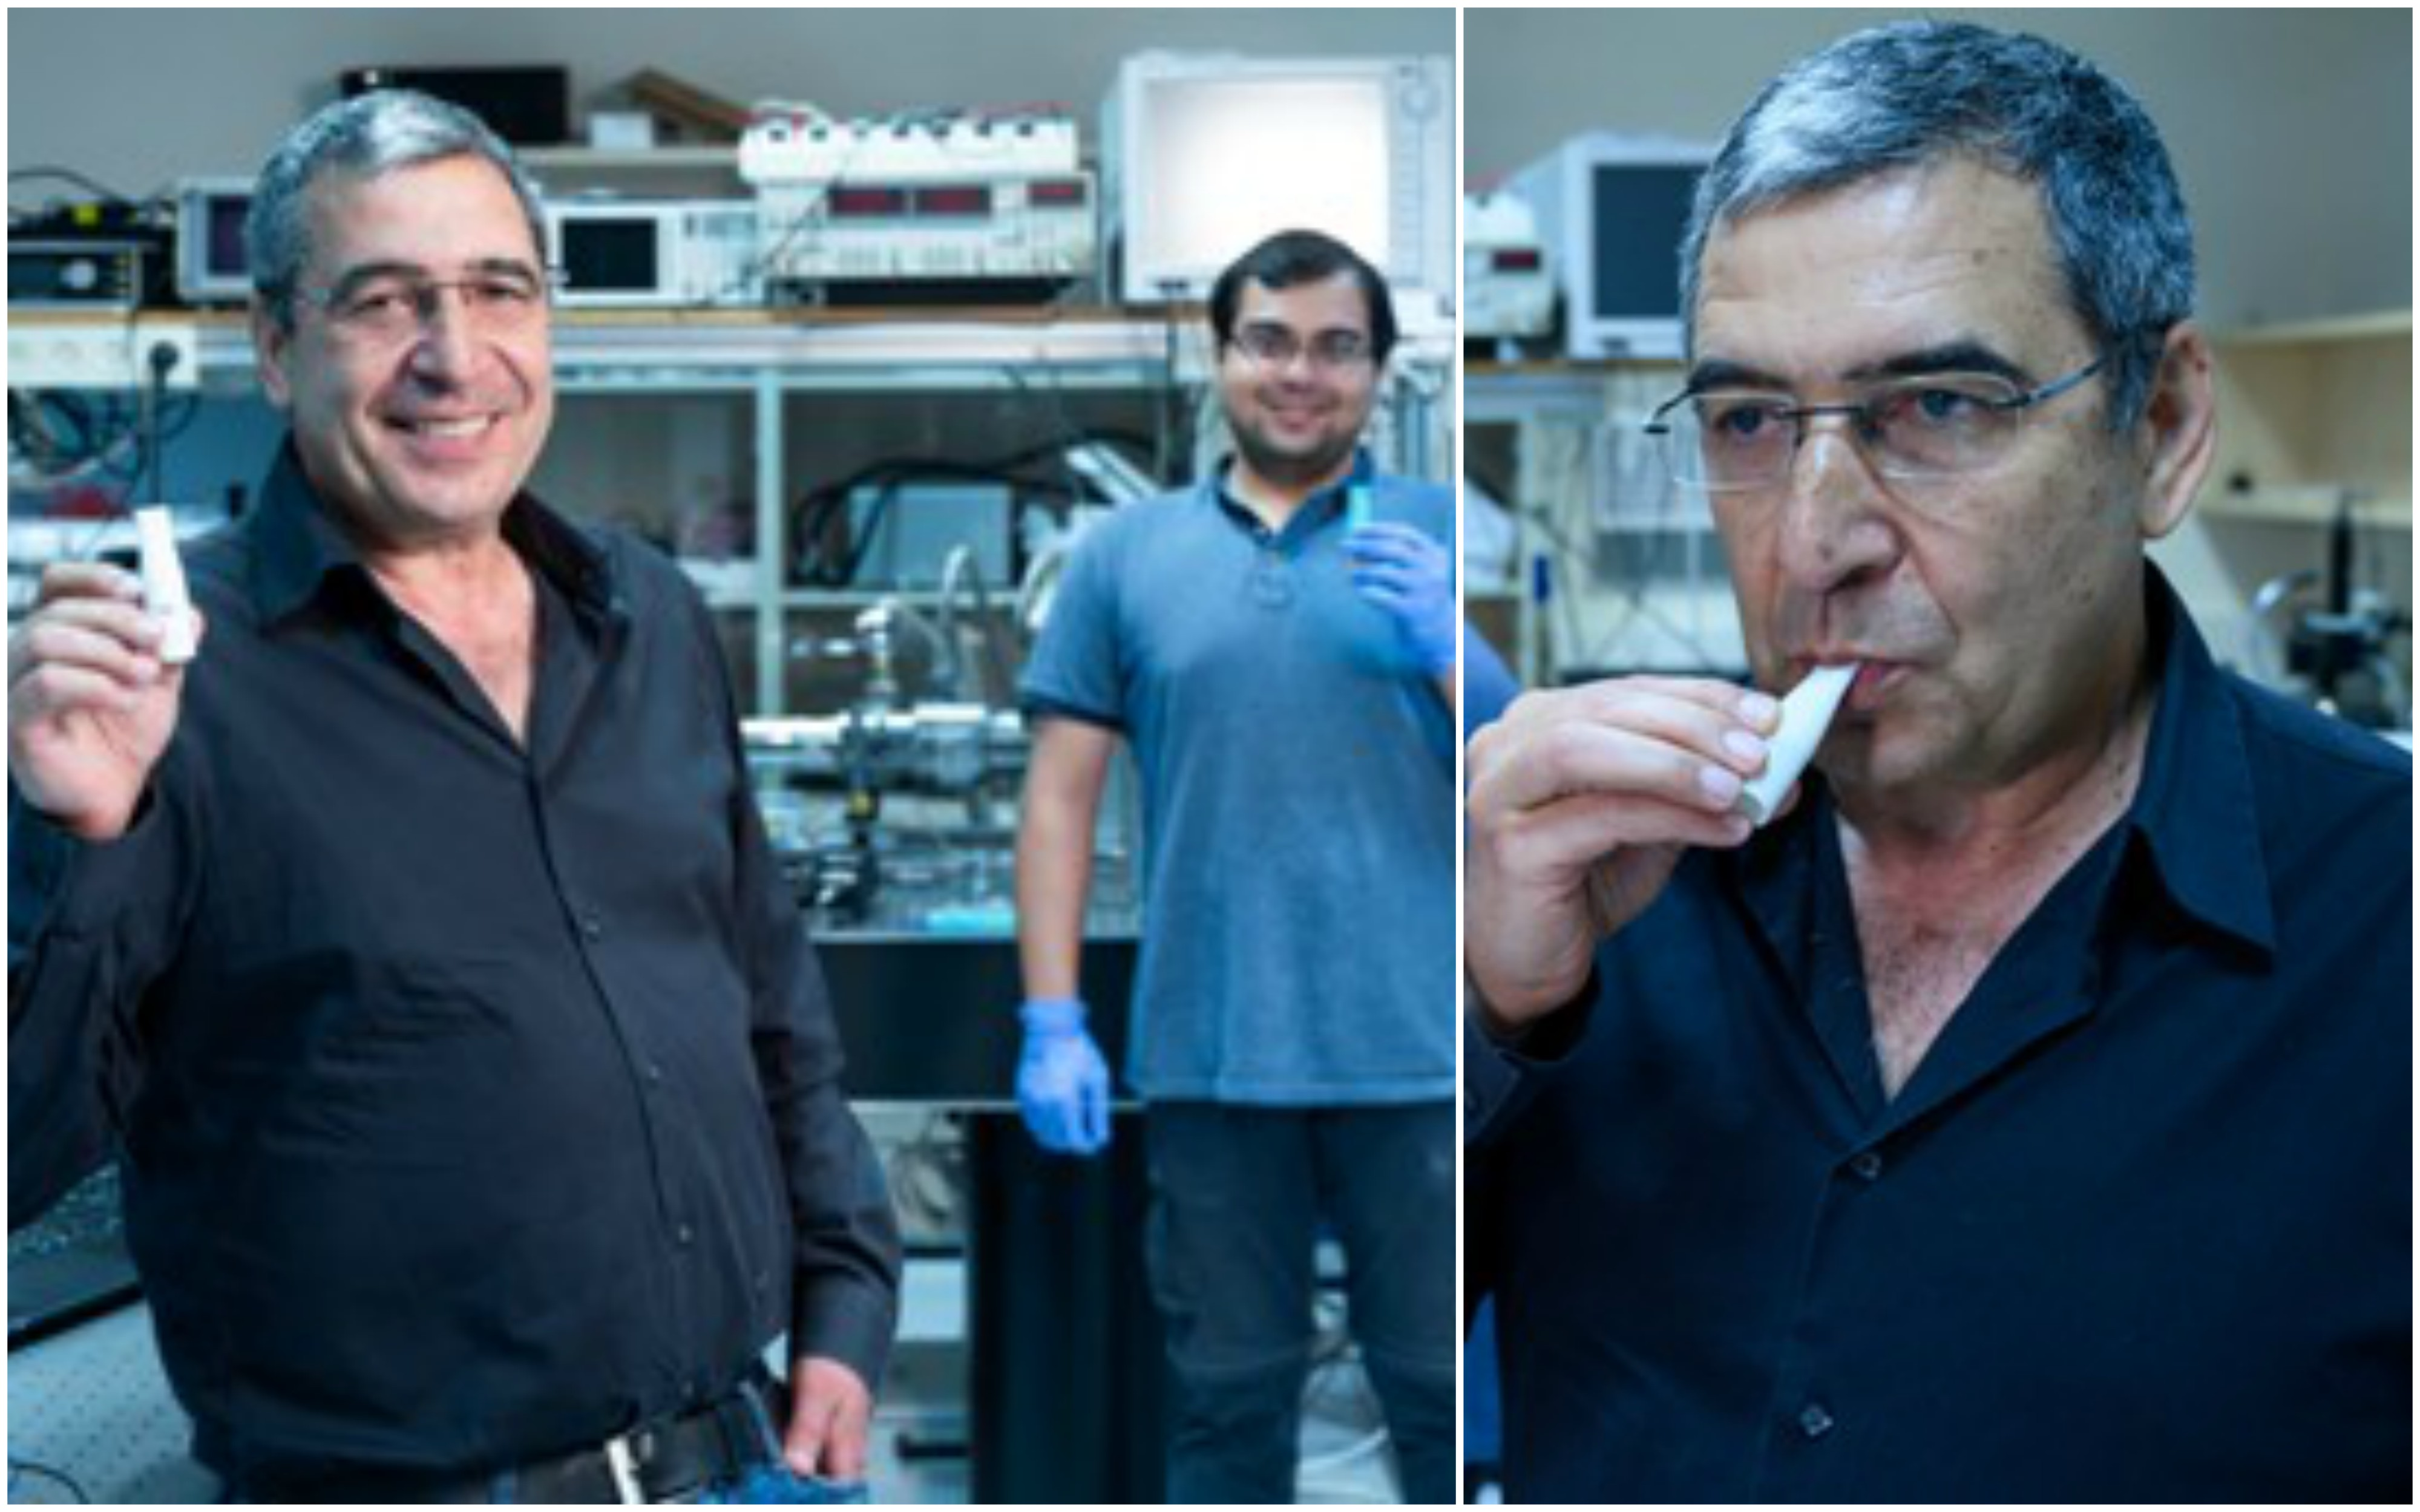 Israeli Scientific Team Claims To Have Invented A Breathalyzer That Detects SARS-CoV-2 Virus In One Minute